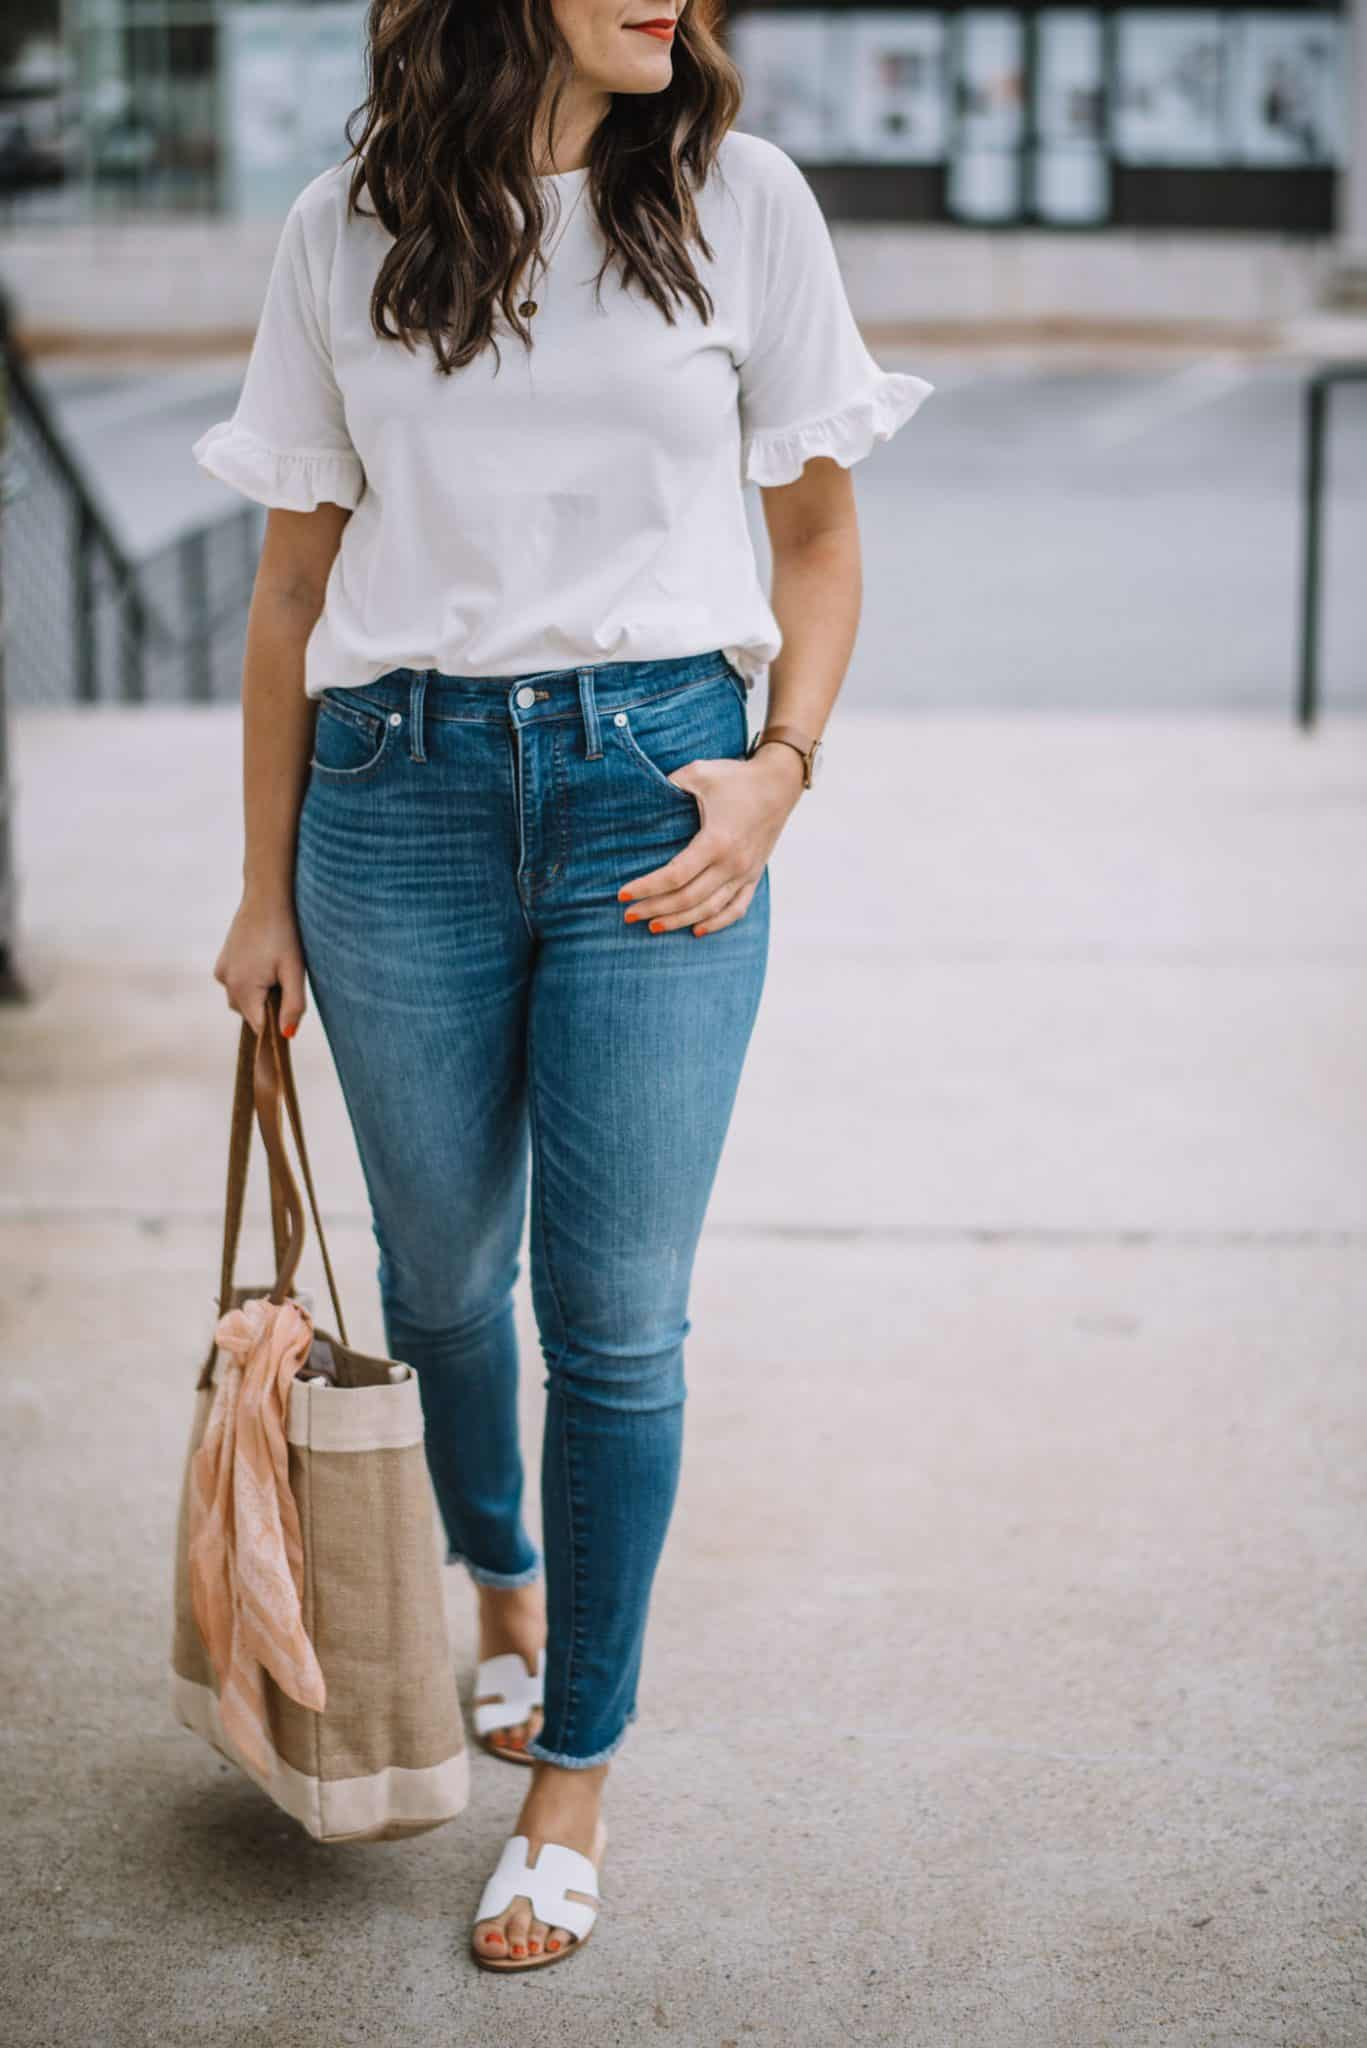 Rachel Parcell ruffle sleeve tee, casual white tee and jeans outfit - My Style Vita